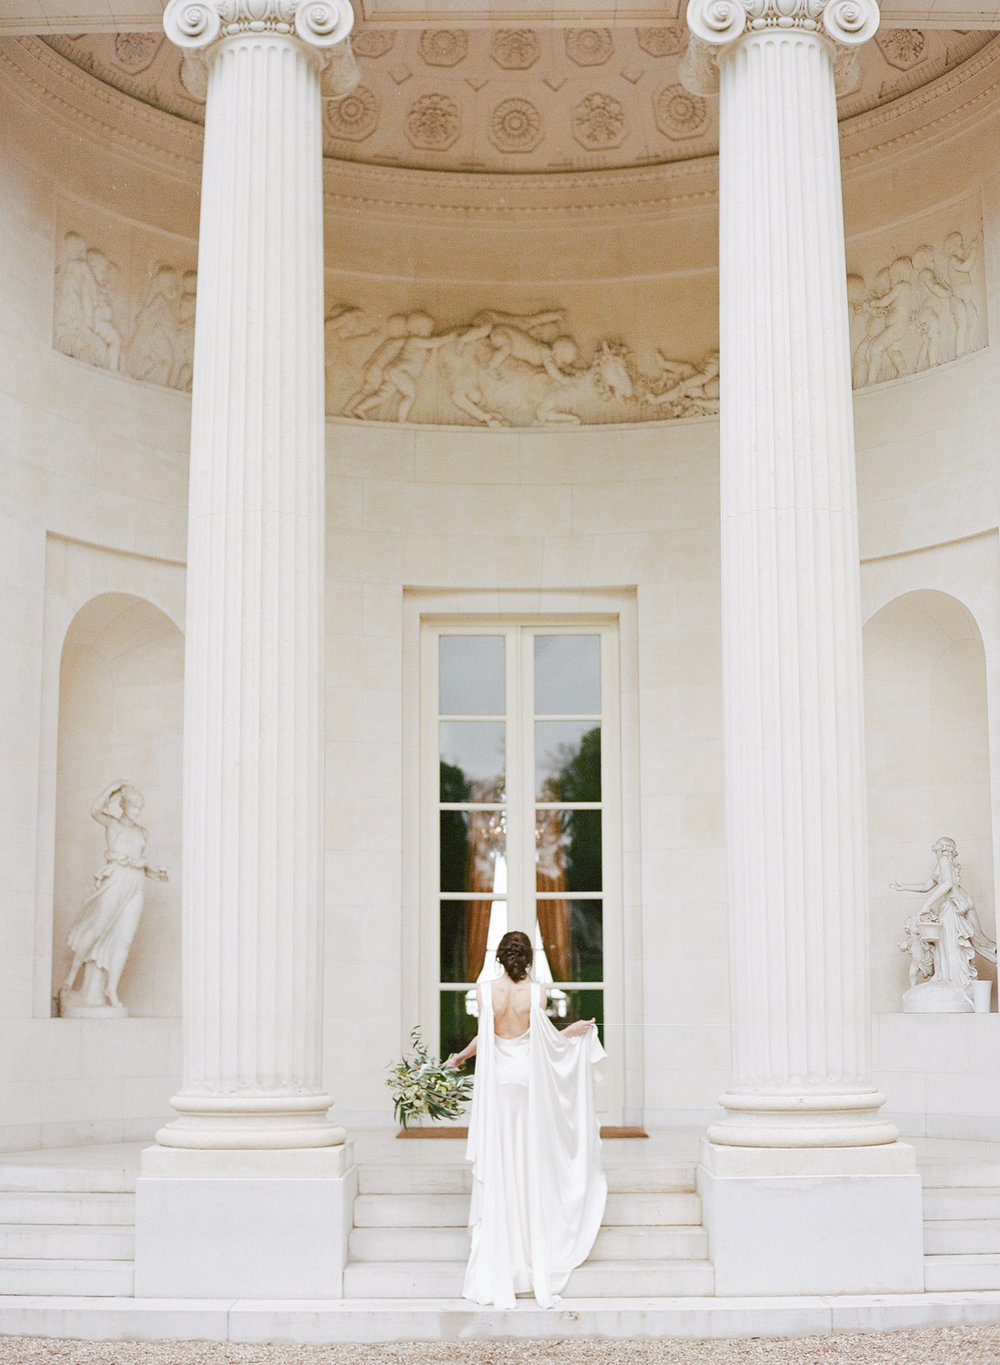 Greek architecture of Pavillon de la Musique and the bride in her Cortana gown with shoulder trains; Sylvie Gil Photography